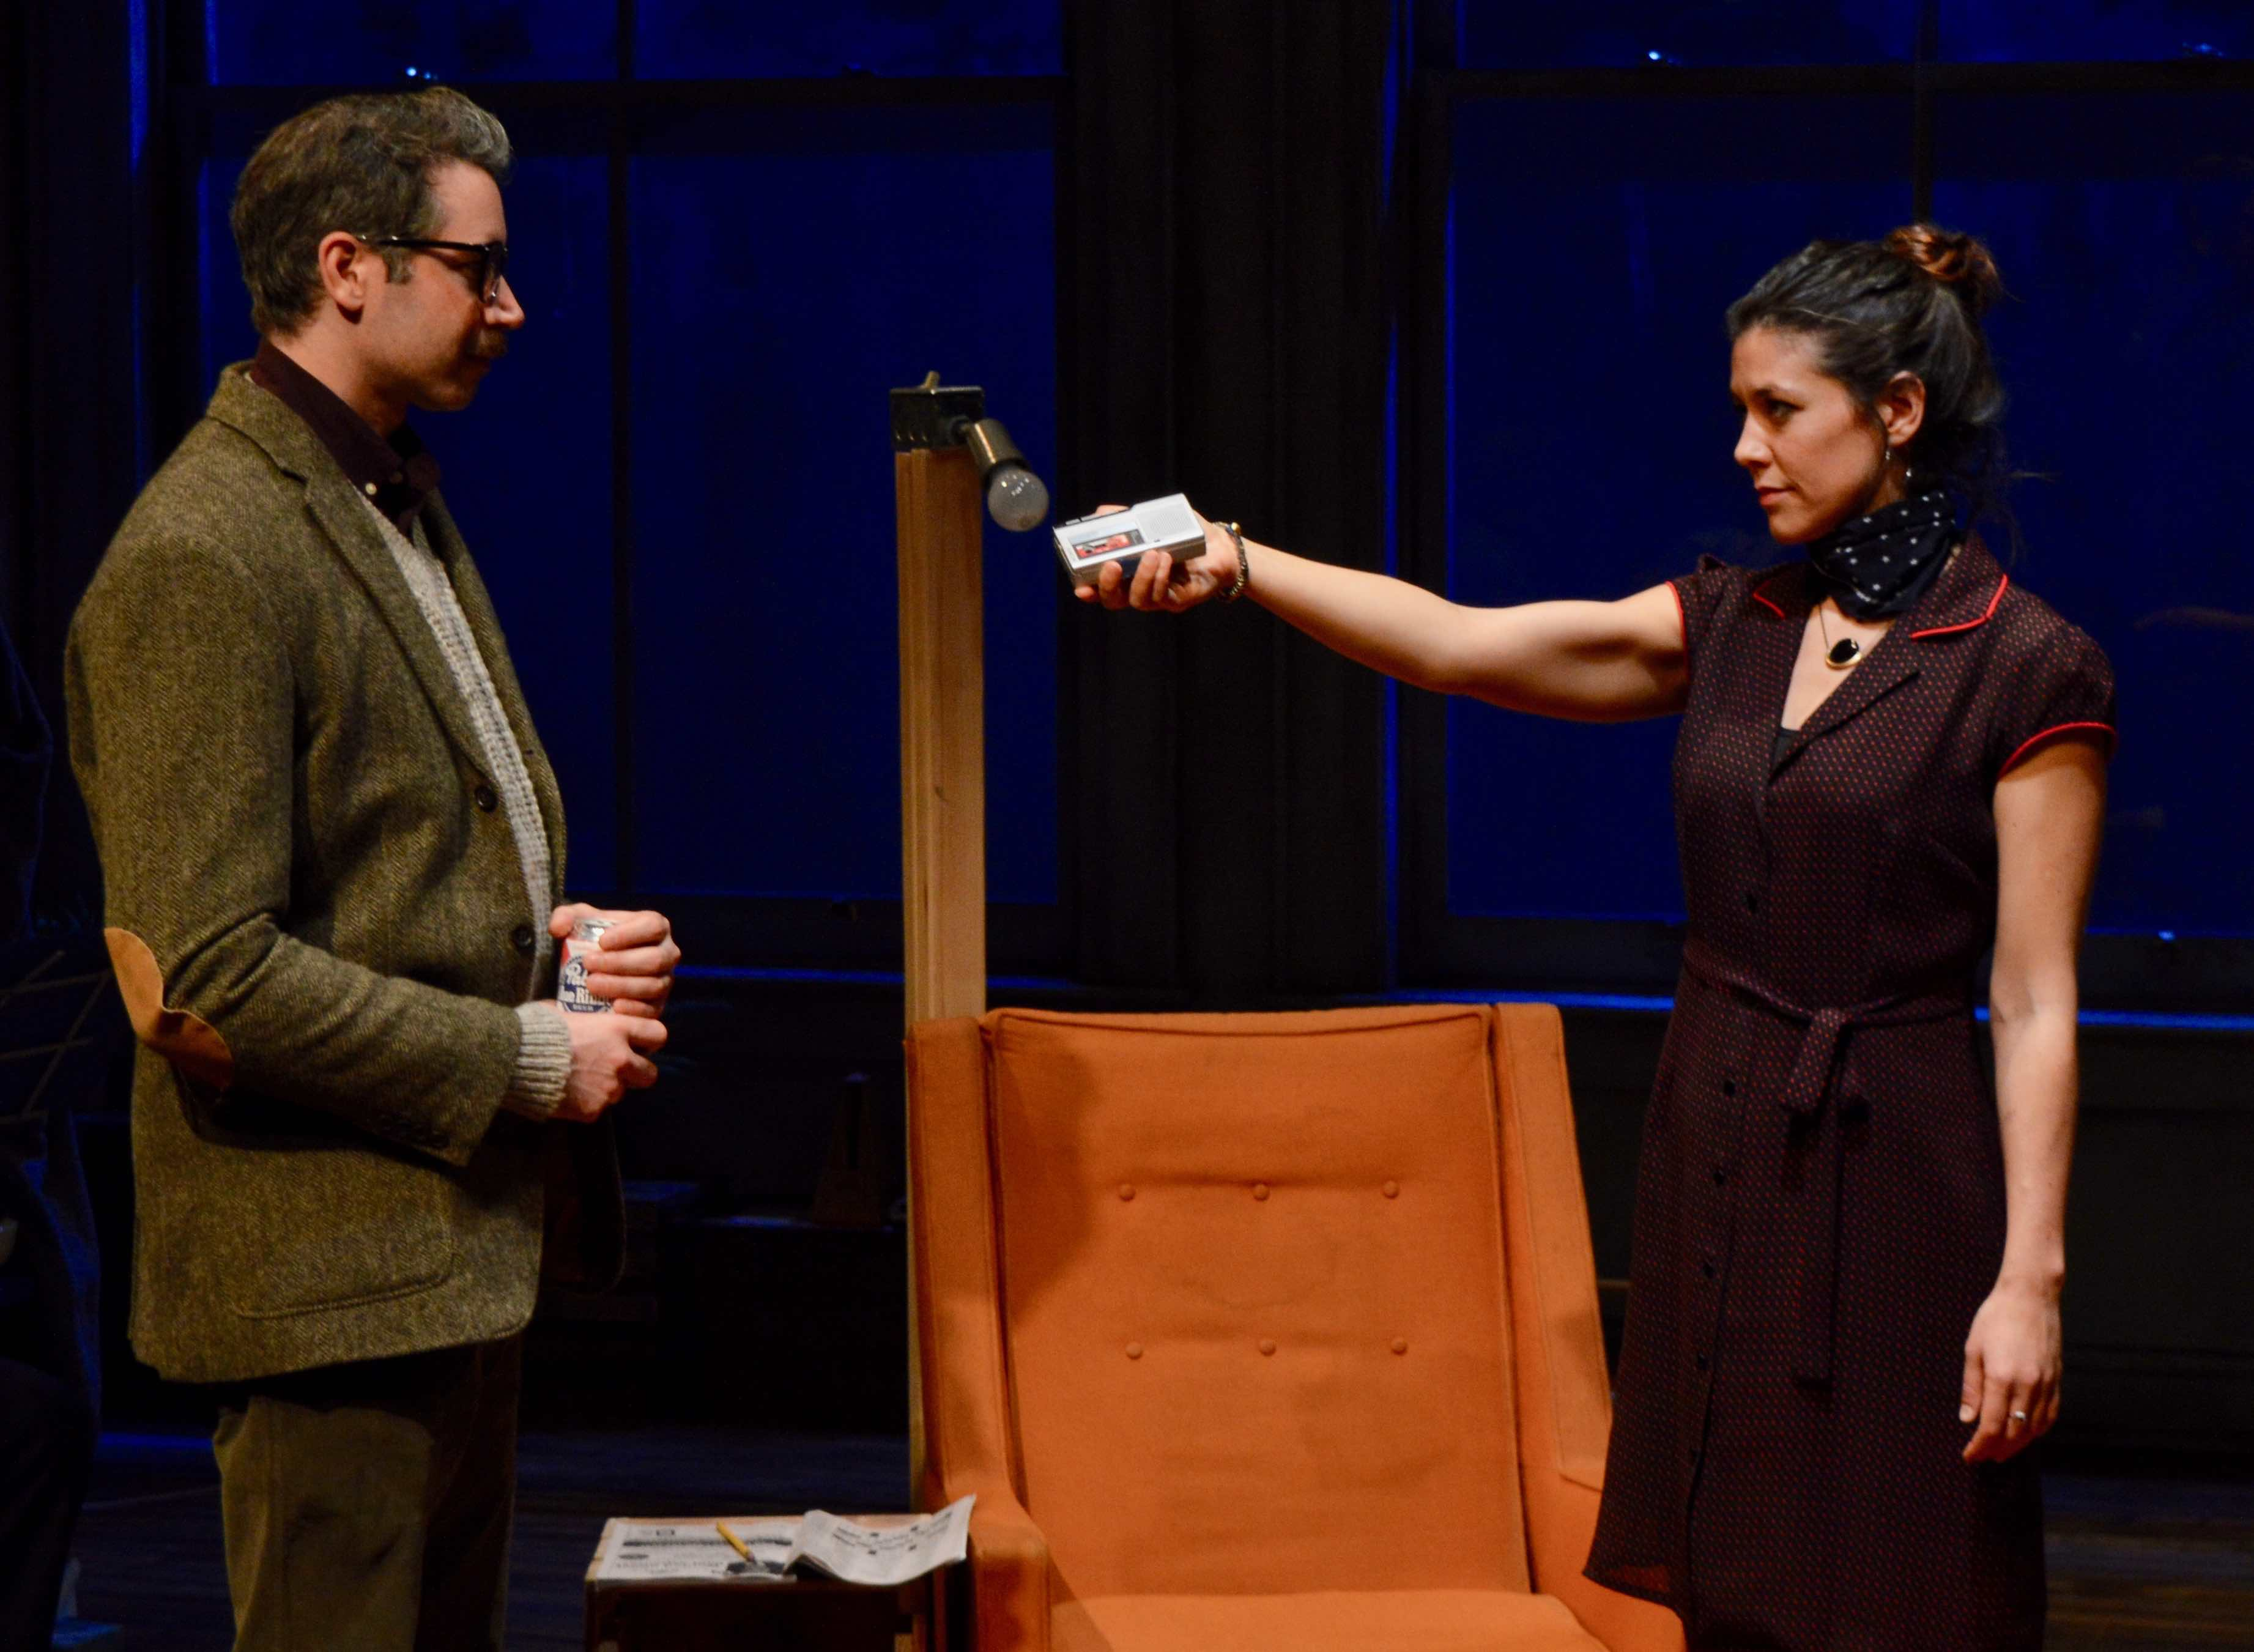 Andrew Pastides as Walter and Zoë Winters as Maggie. Photo by Julie Haber